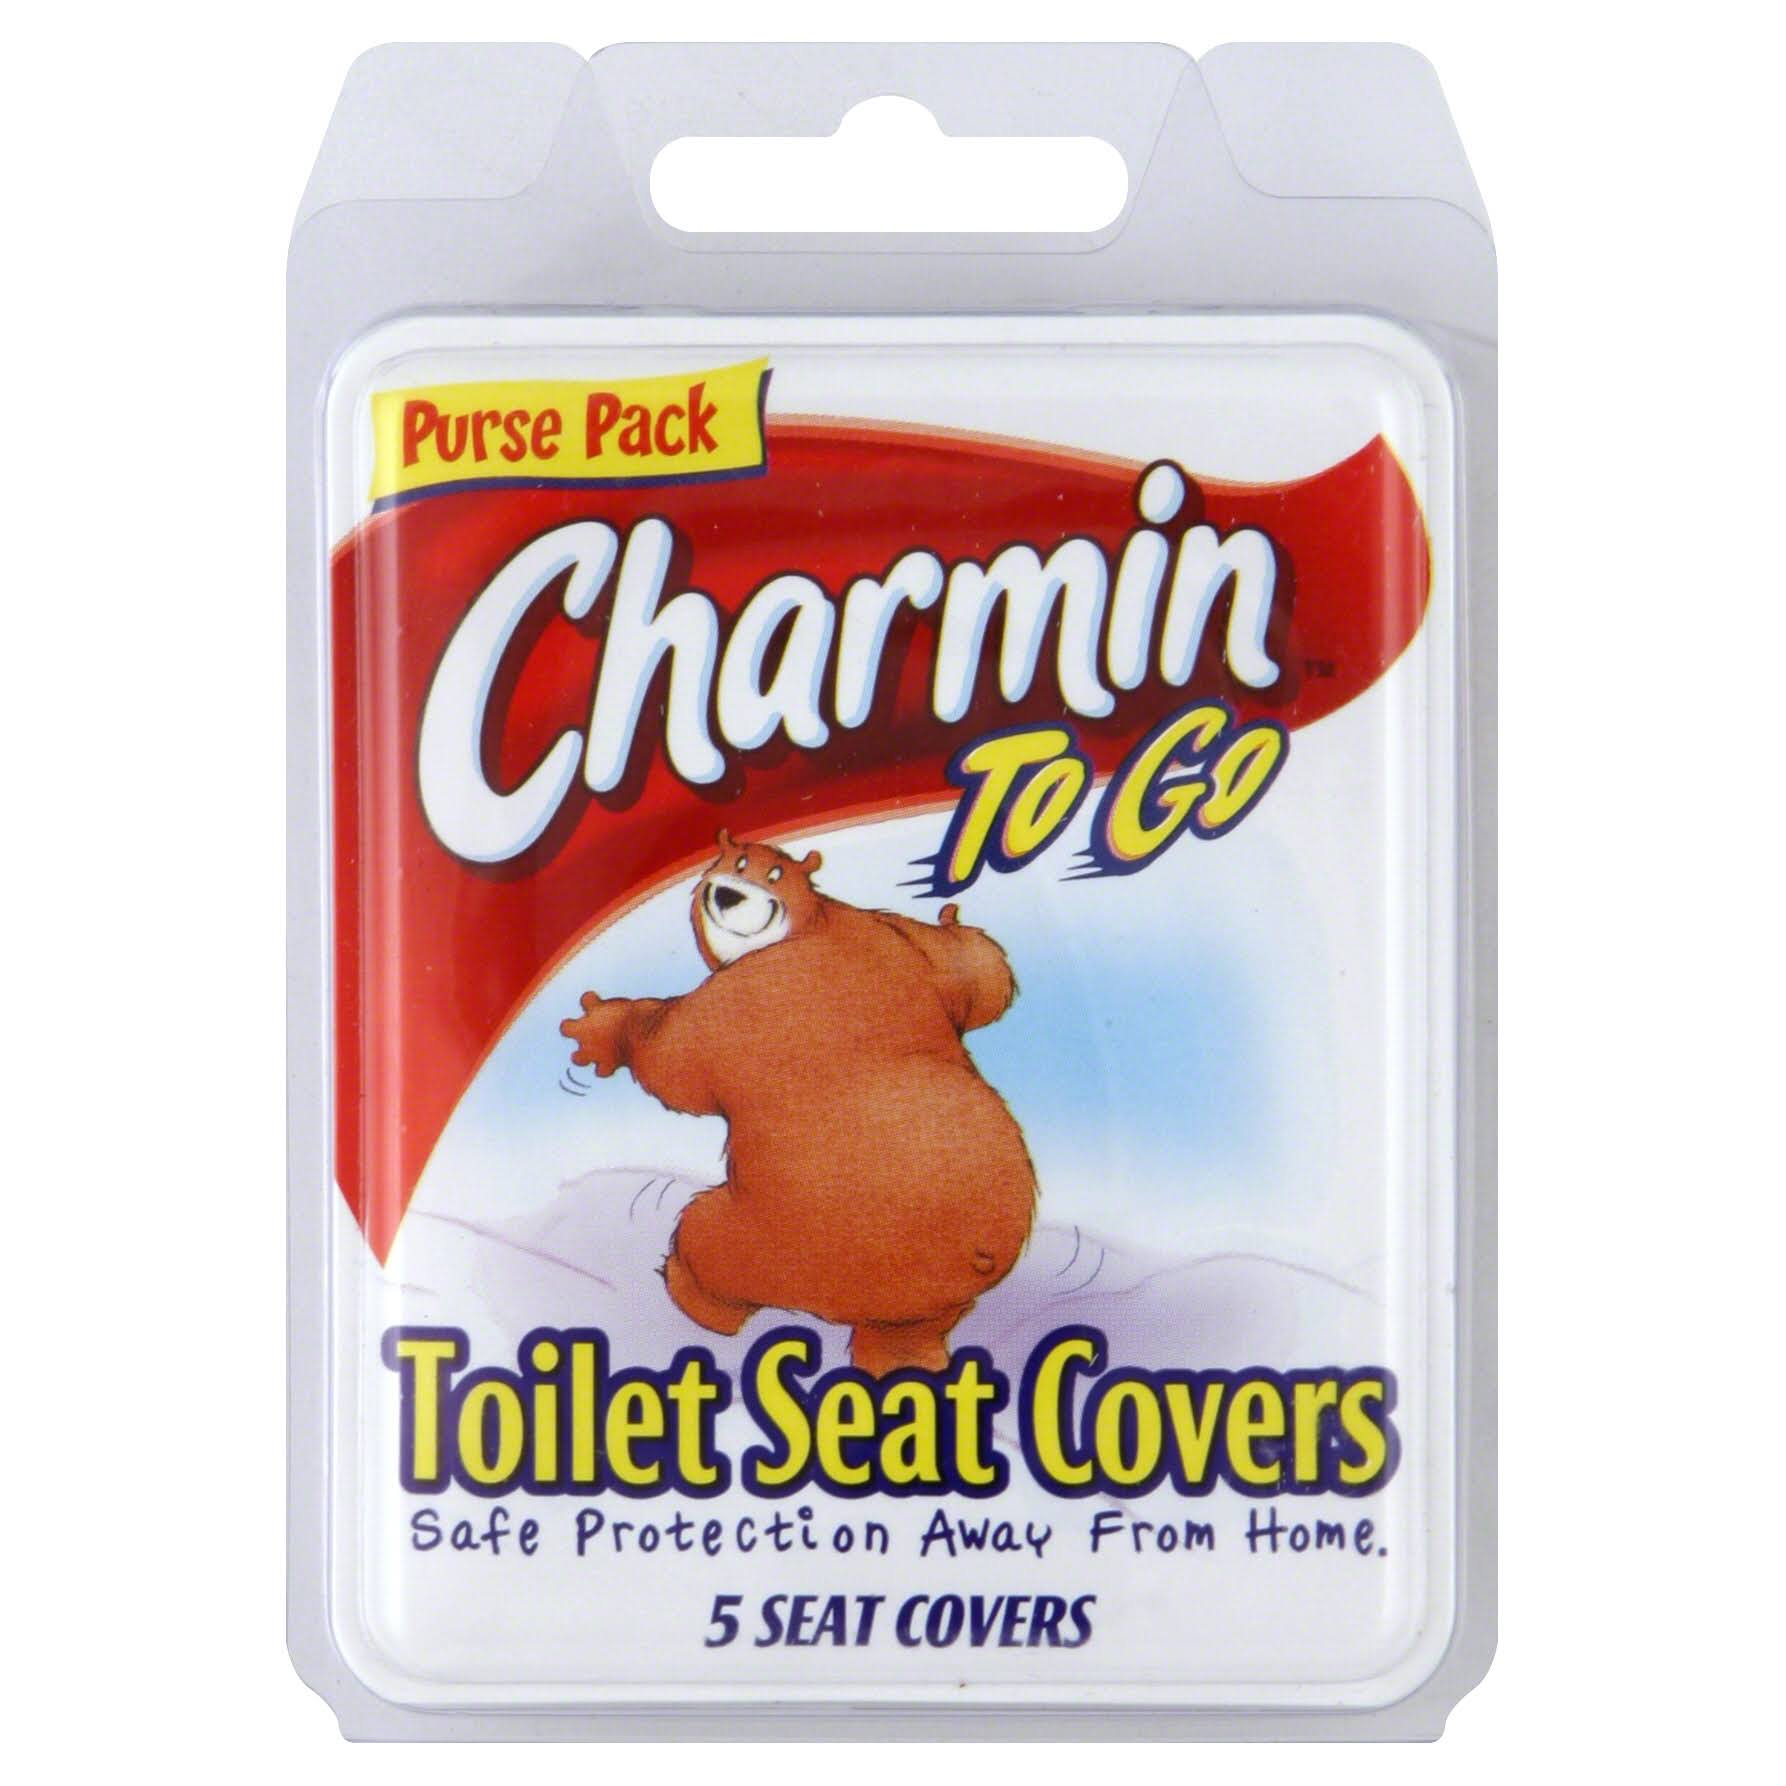 Charmin To Go Toilet Seat Covers Tissue - 5 Seat Covers, Pack of 3